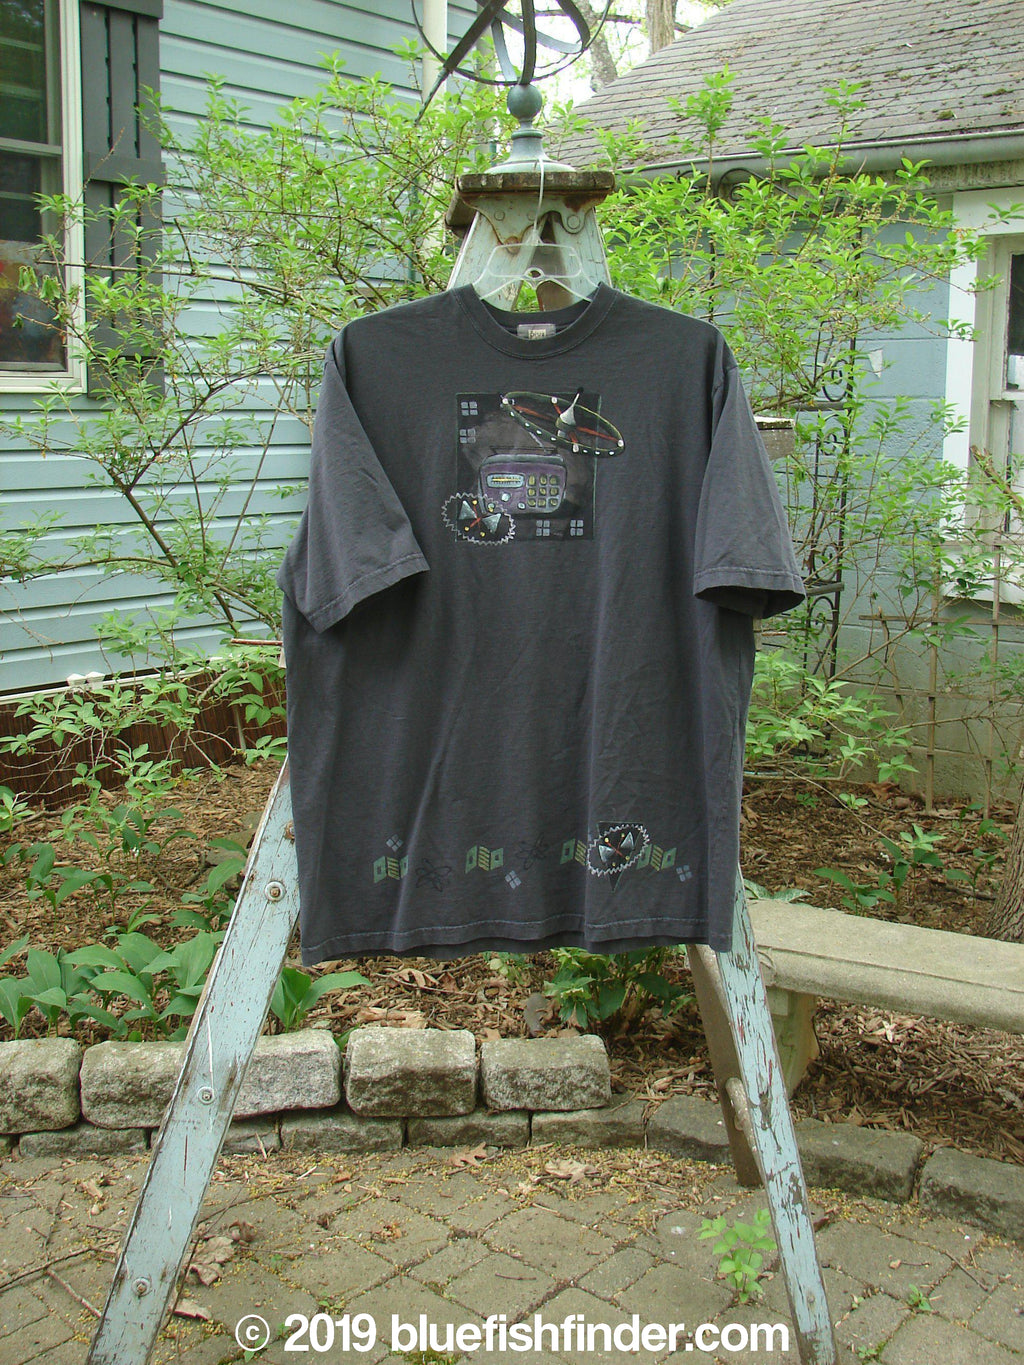 Vintage Blue Fish Clothing 2000 Short Sleeved Tee Space Craft Orbit Size 2- Bluefishfinder.com